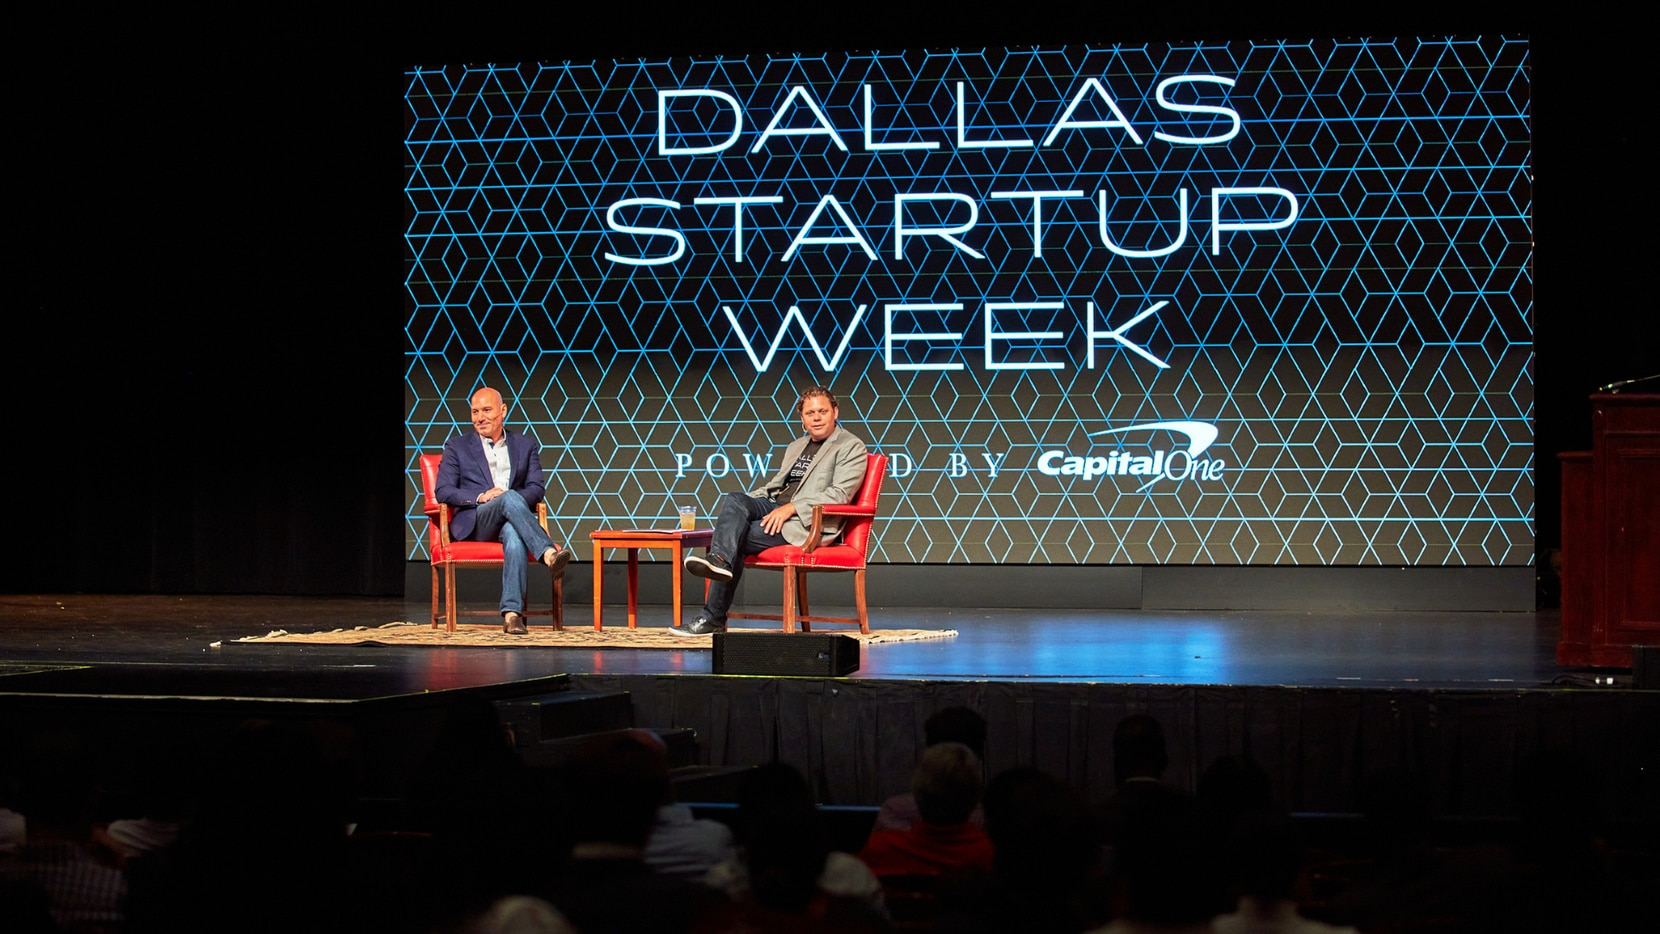 This year's Dallas Startup Week took place virtually and in person at Southern Methodist University's Cox School of Business. Abe Minkara, pictured on left, was the event's keynote speaker. Minkara is the founding partner of Legacy Knight, an investment firm providing tailored advisory services to high-net-worth families and family offices.